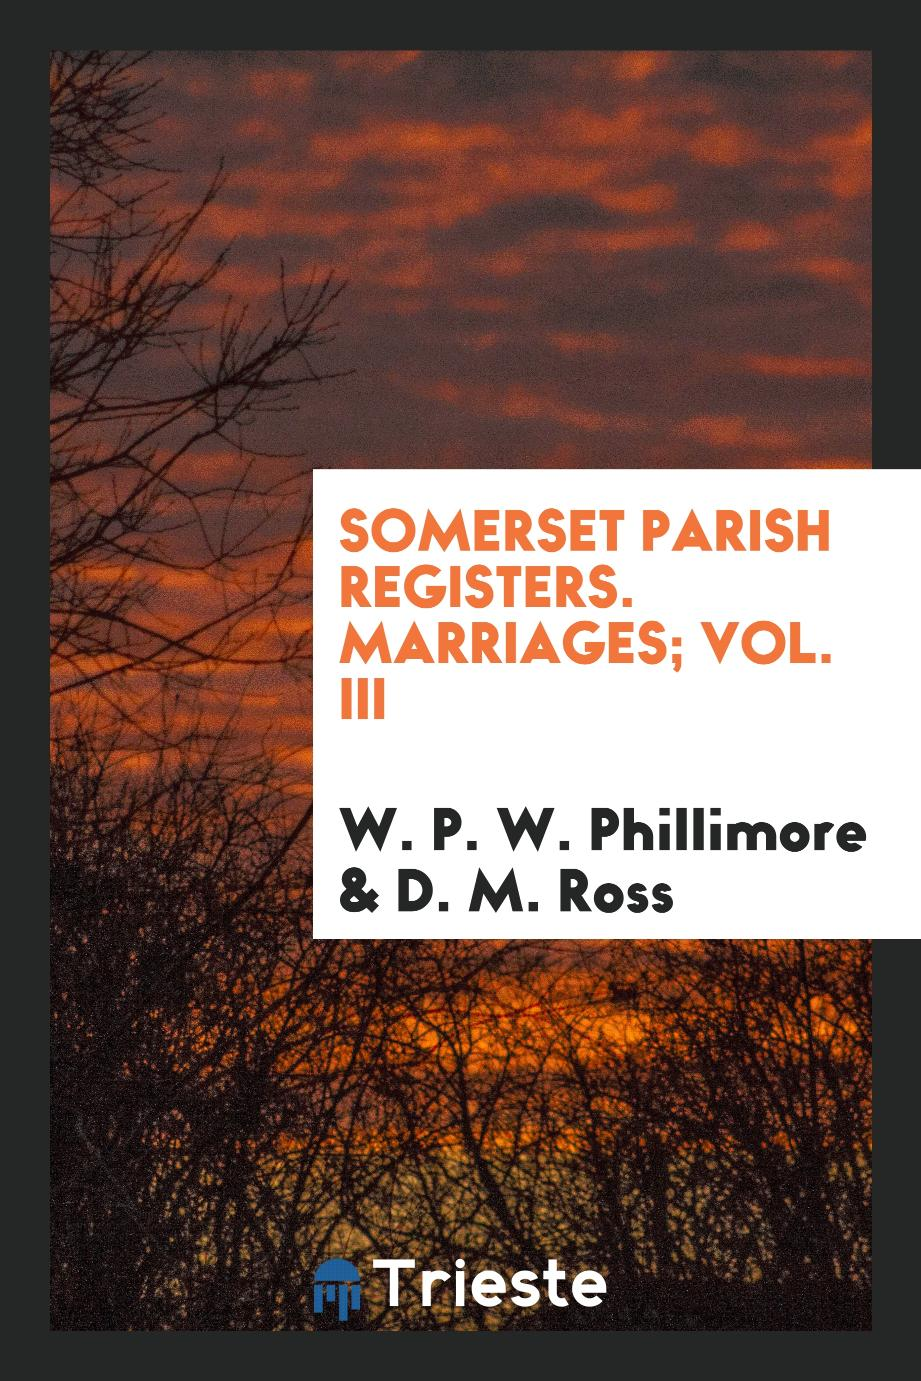 W. P. W. Phillimore, D. M. Ross - Somerset Parish registers. Marriages; Vol. III